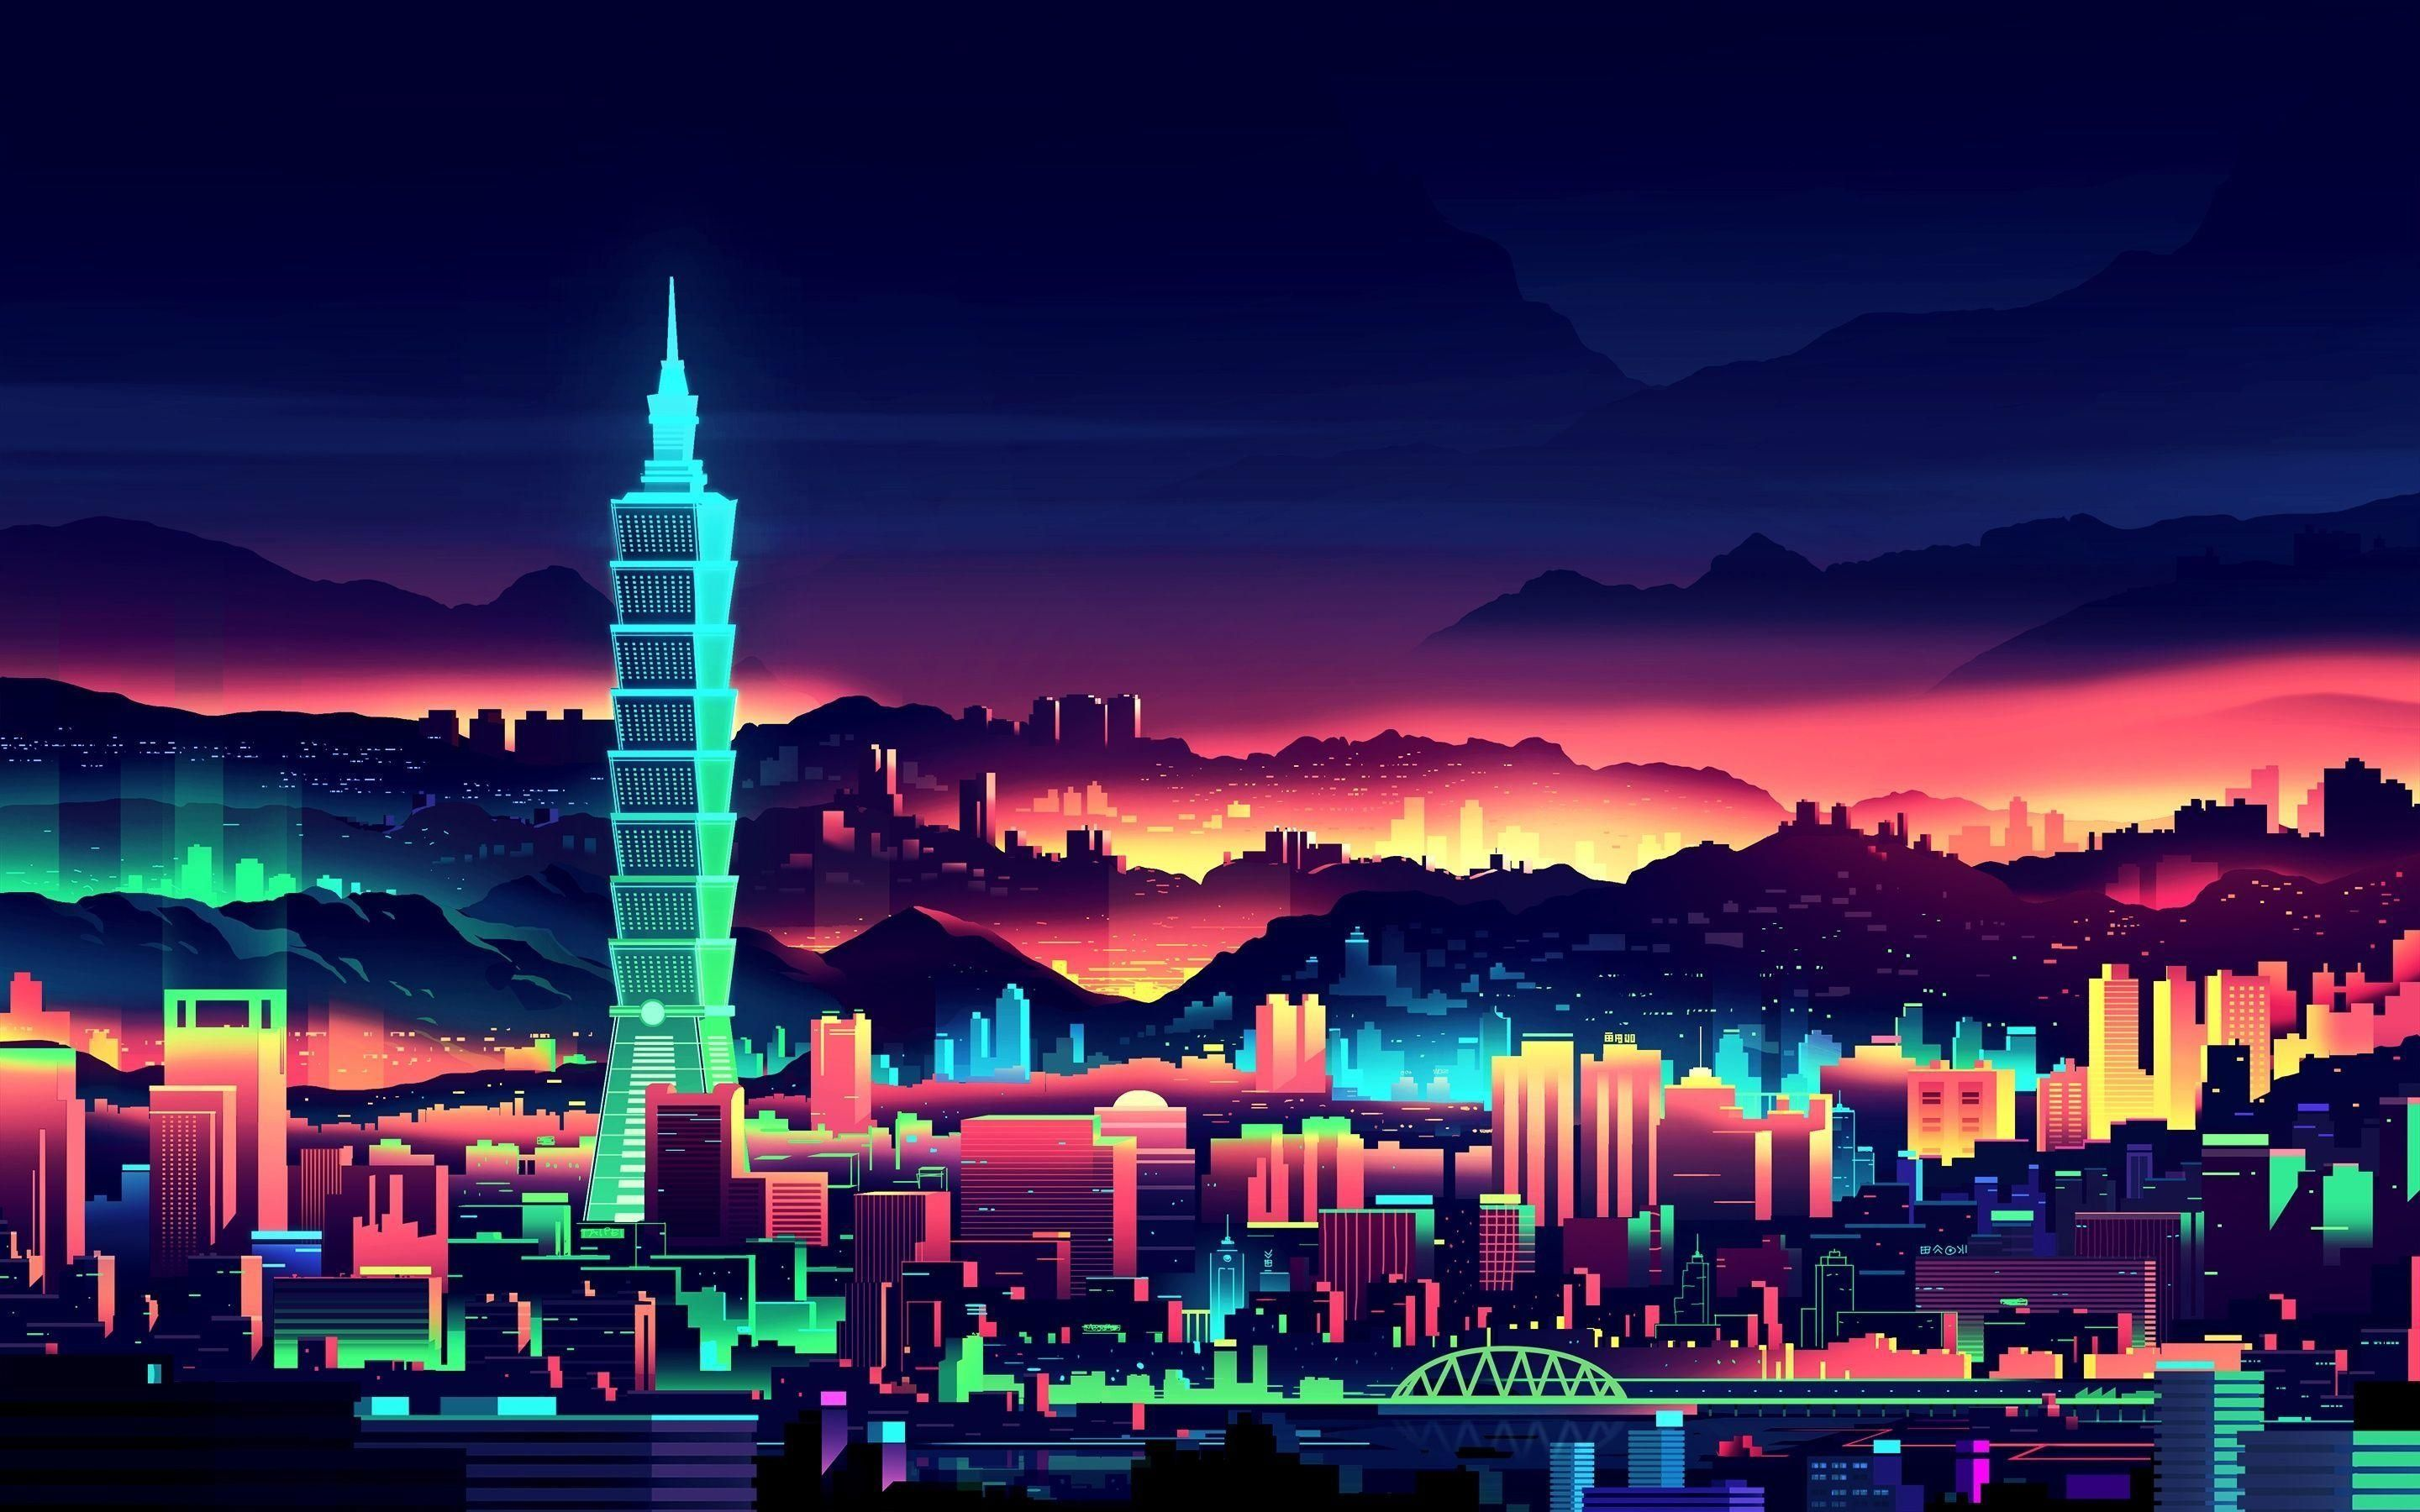 Retro Anime City Wallpapers - Wallpaper Cave